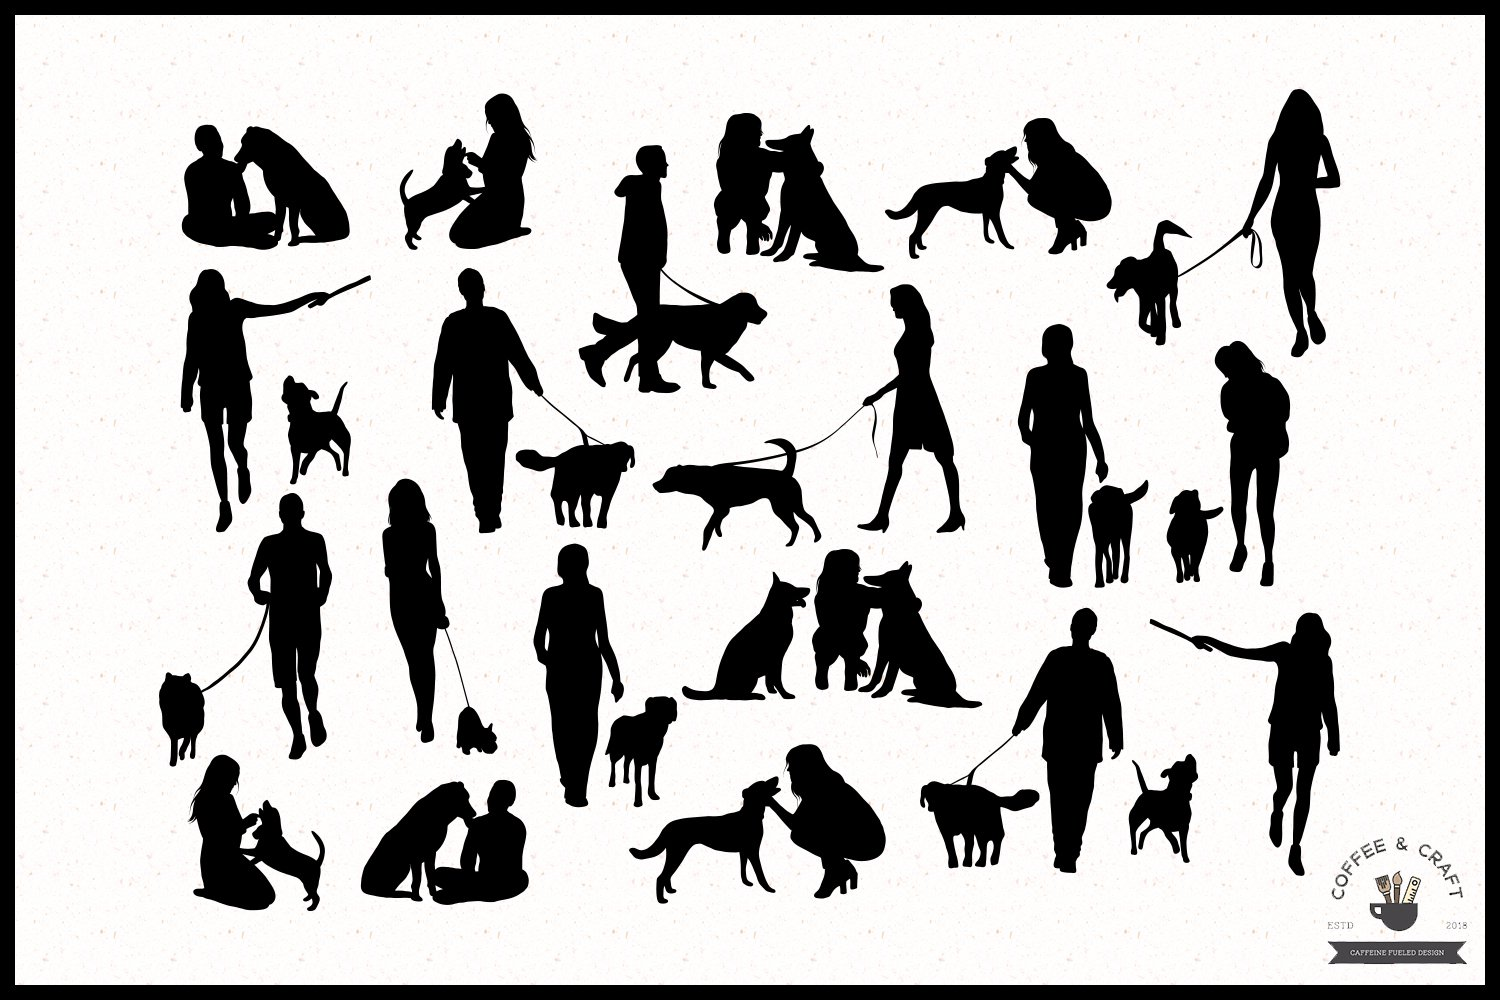 Dog owners clipart example image 2